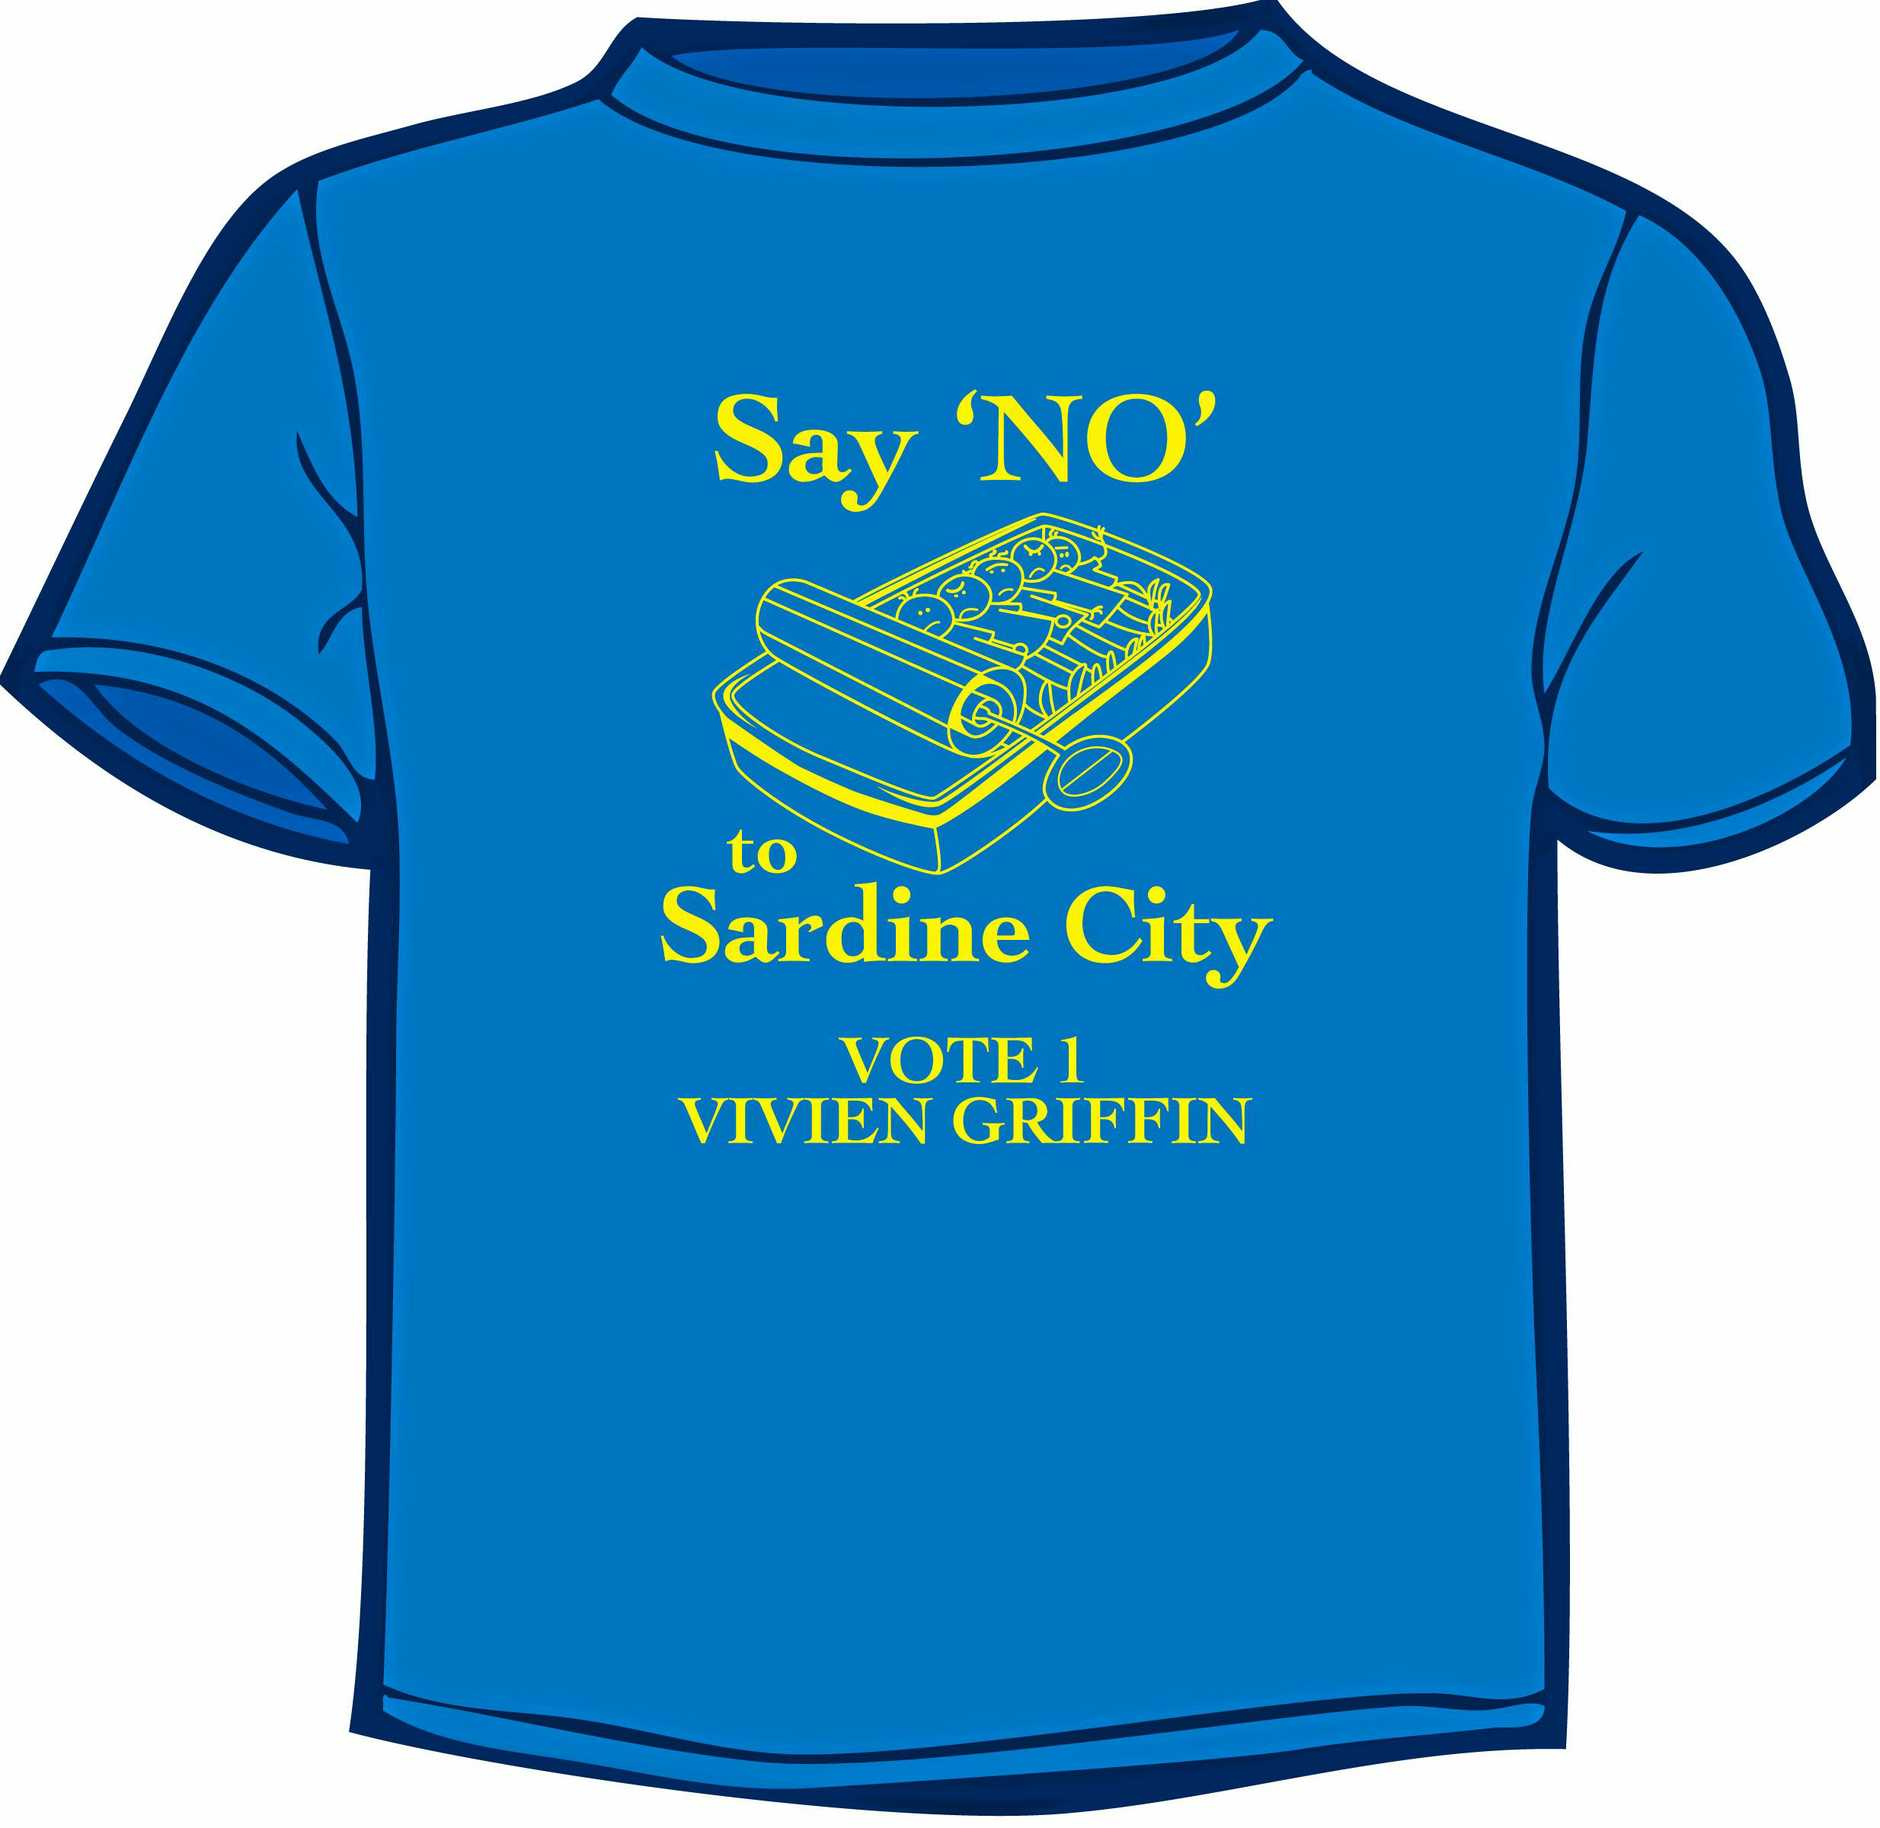 Sardine City or a sustainable coast population? This is the burning issue that will decide the March 15 Regional Council election, predicted Coolum and Hinterland Division 9 candidate Vivien Griffin today. 'Say no to sardine city' t-shirt.